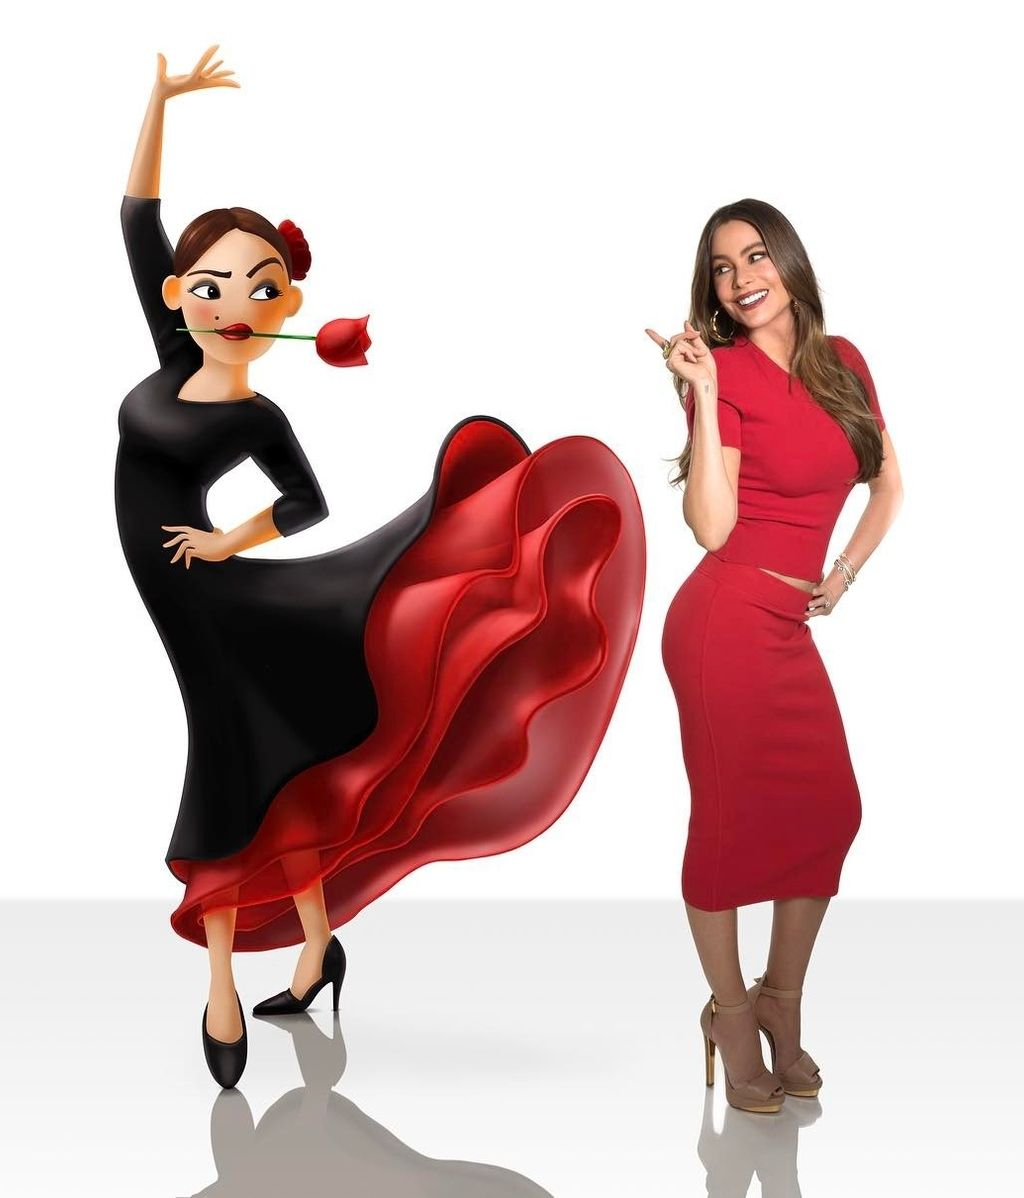 Sofía Vergara pone voz al emoticono de la flamenca en 'The emoji movie'